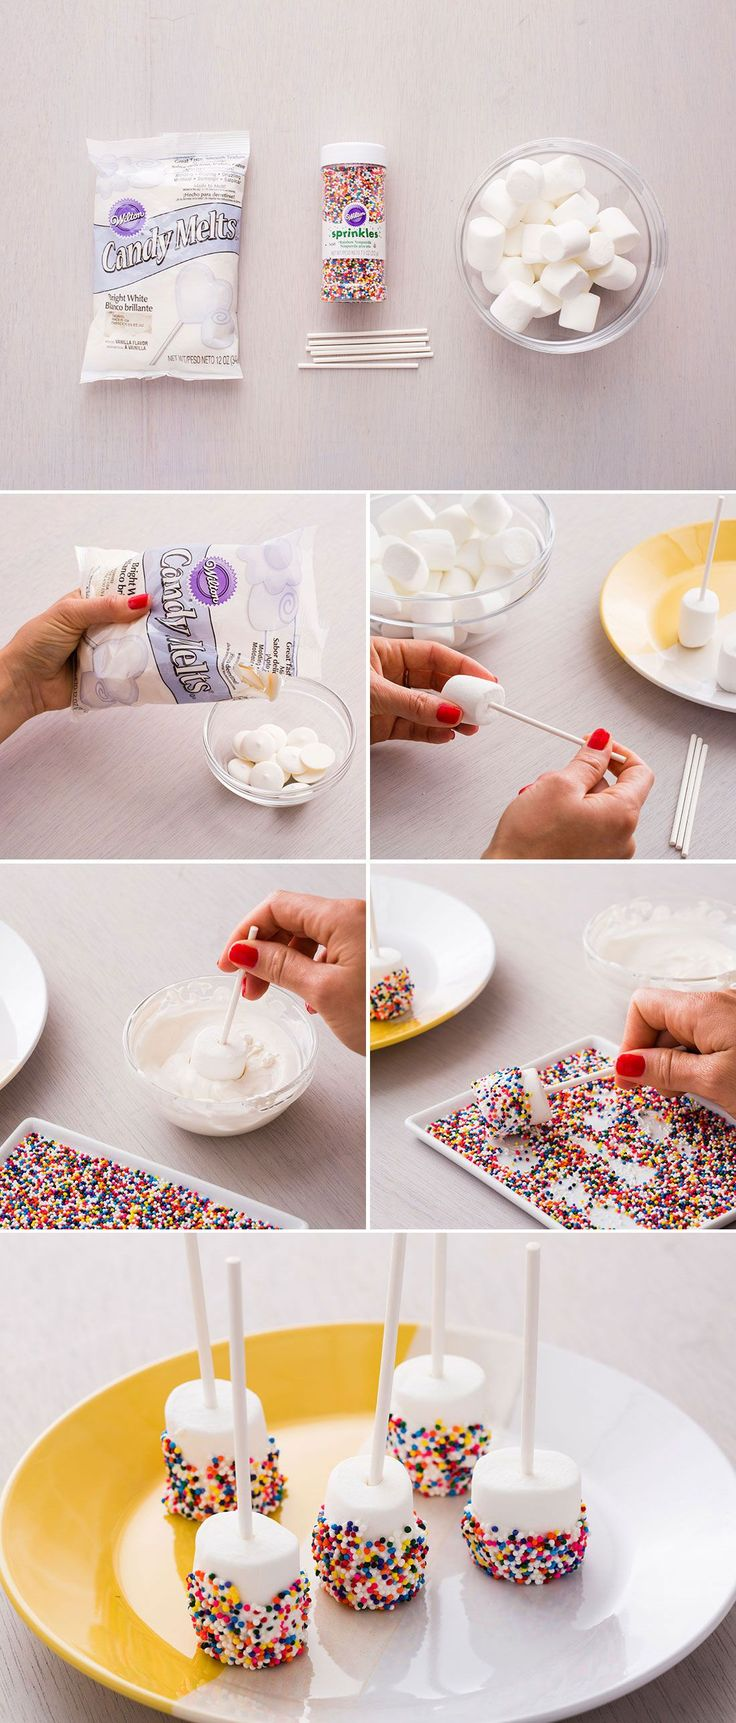 Sprinkle-Dipped Marshmallow Pops make for the perfect picnic date dessert.  1. Poke lollipop sticks into marshmallows. 2. Heat up candy melts in the microwave. 3. Dip marshmallows into melted candy and roll in sprinkles. 4. Let them dry and enjoy!